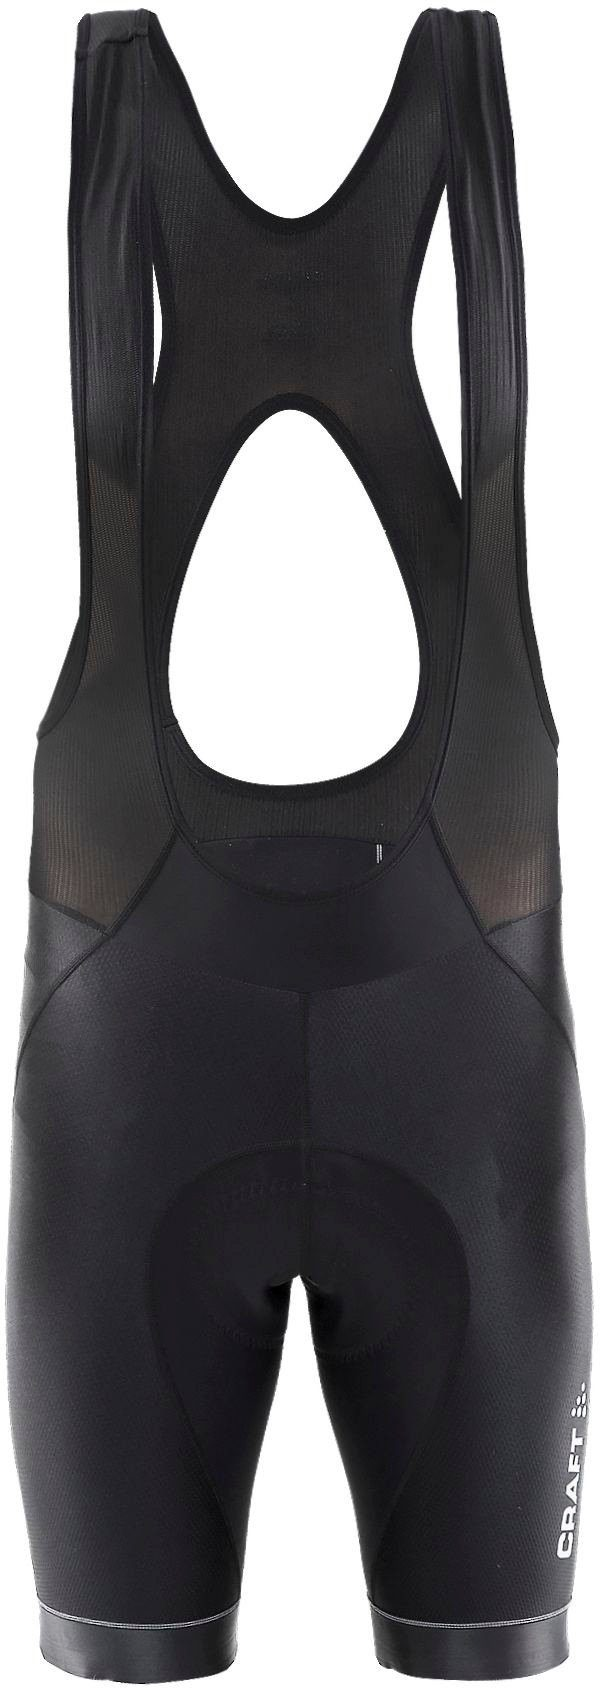 Craft Radhose »Balance Bib Short Men«